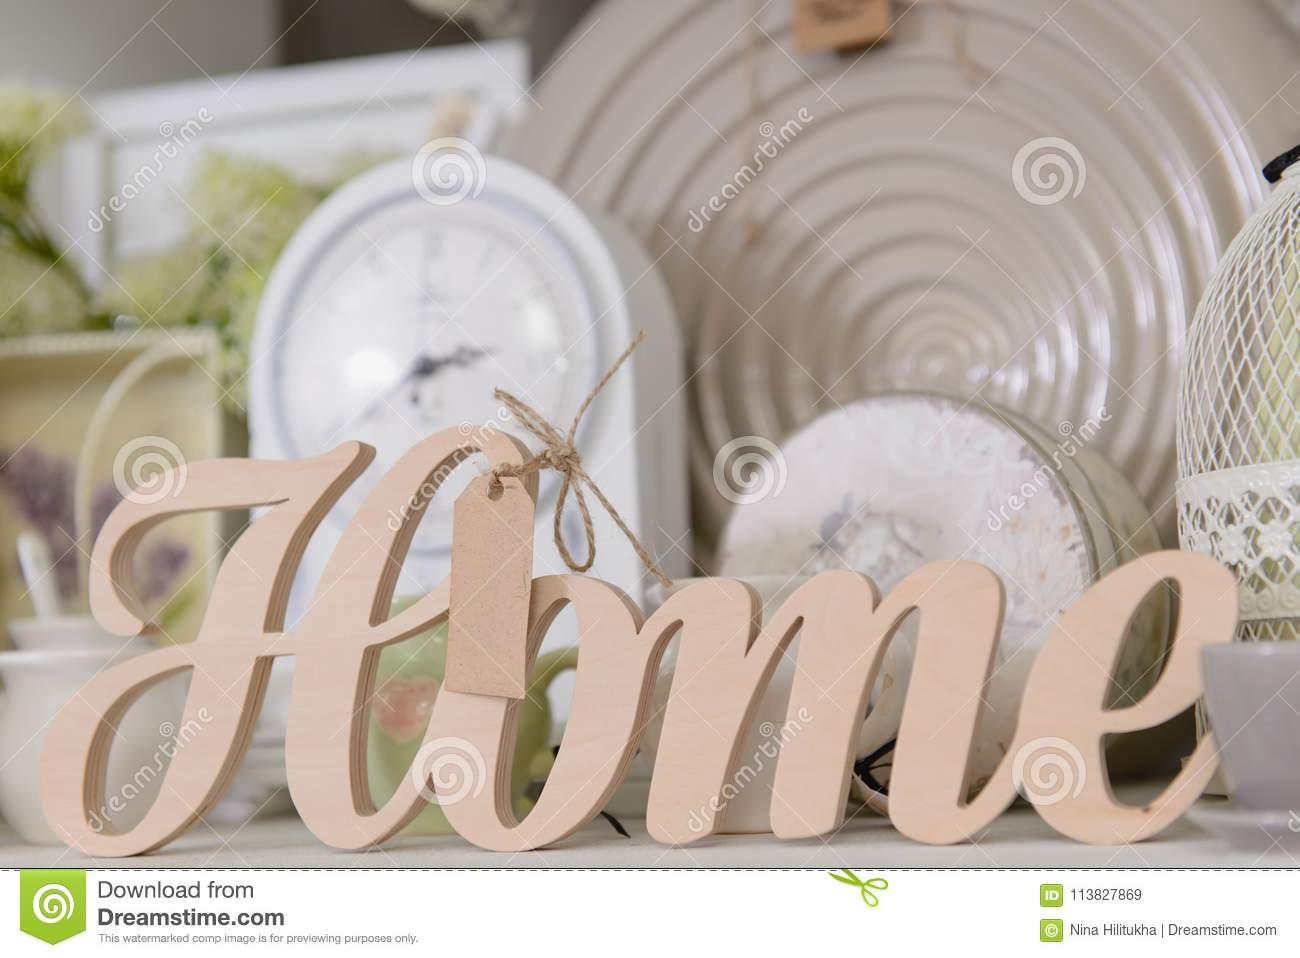 Decor For Home In Pastel Colors Stock Image Image Of Shelf